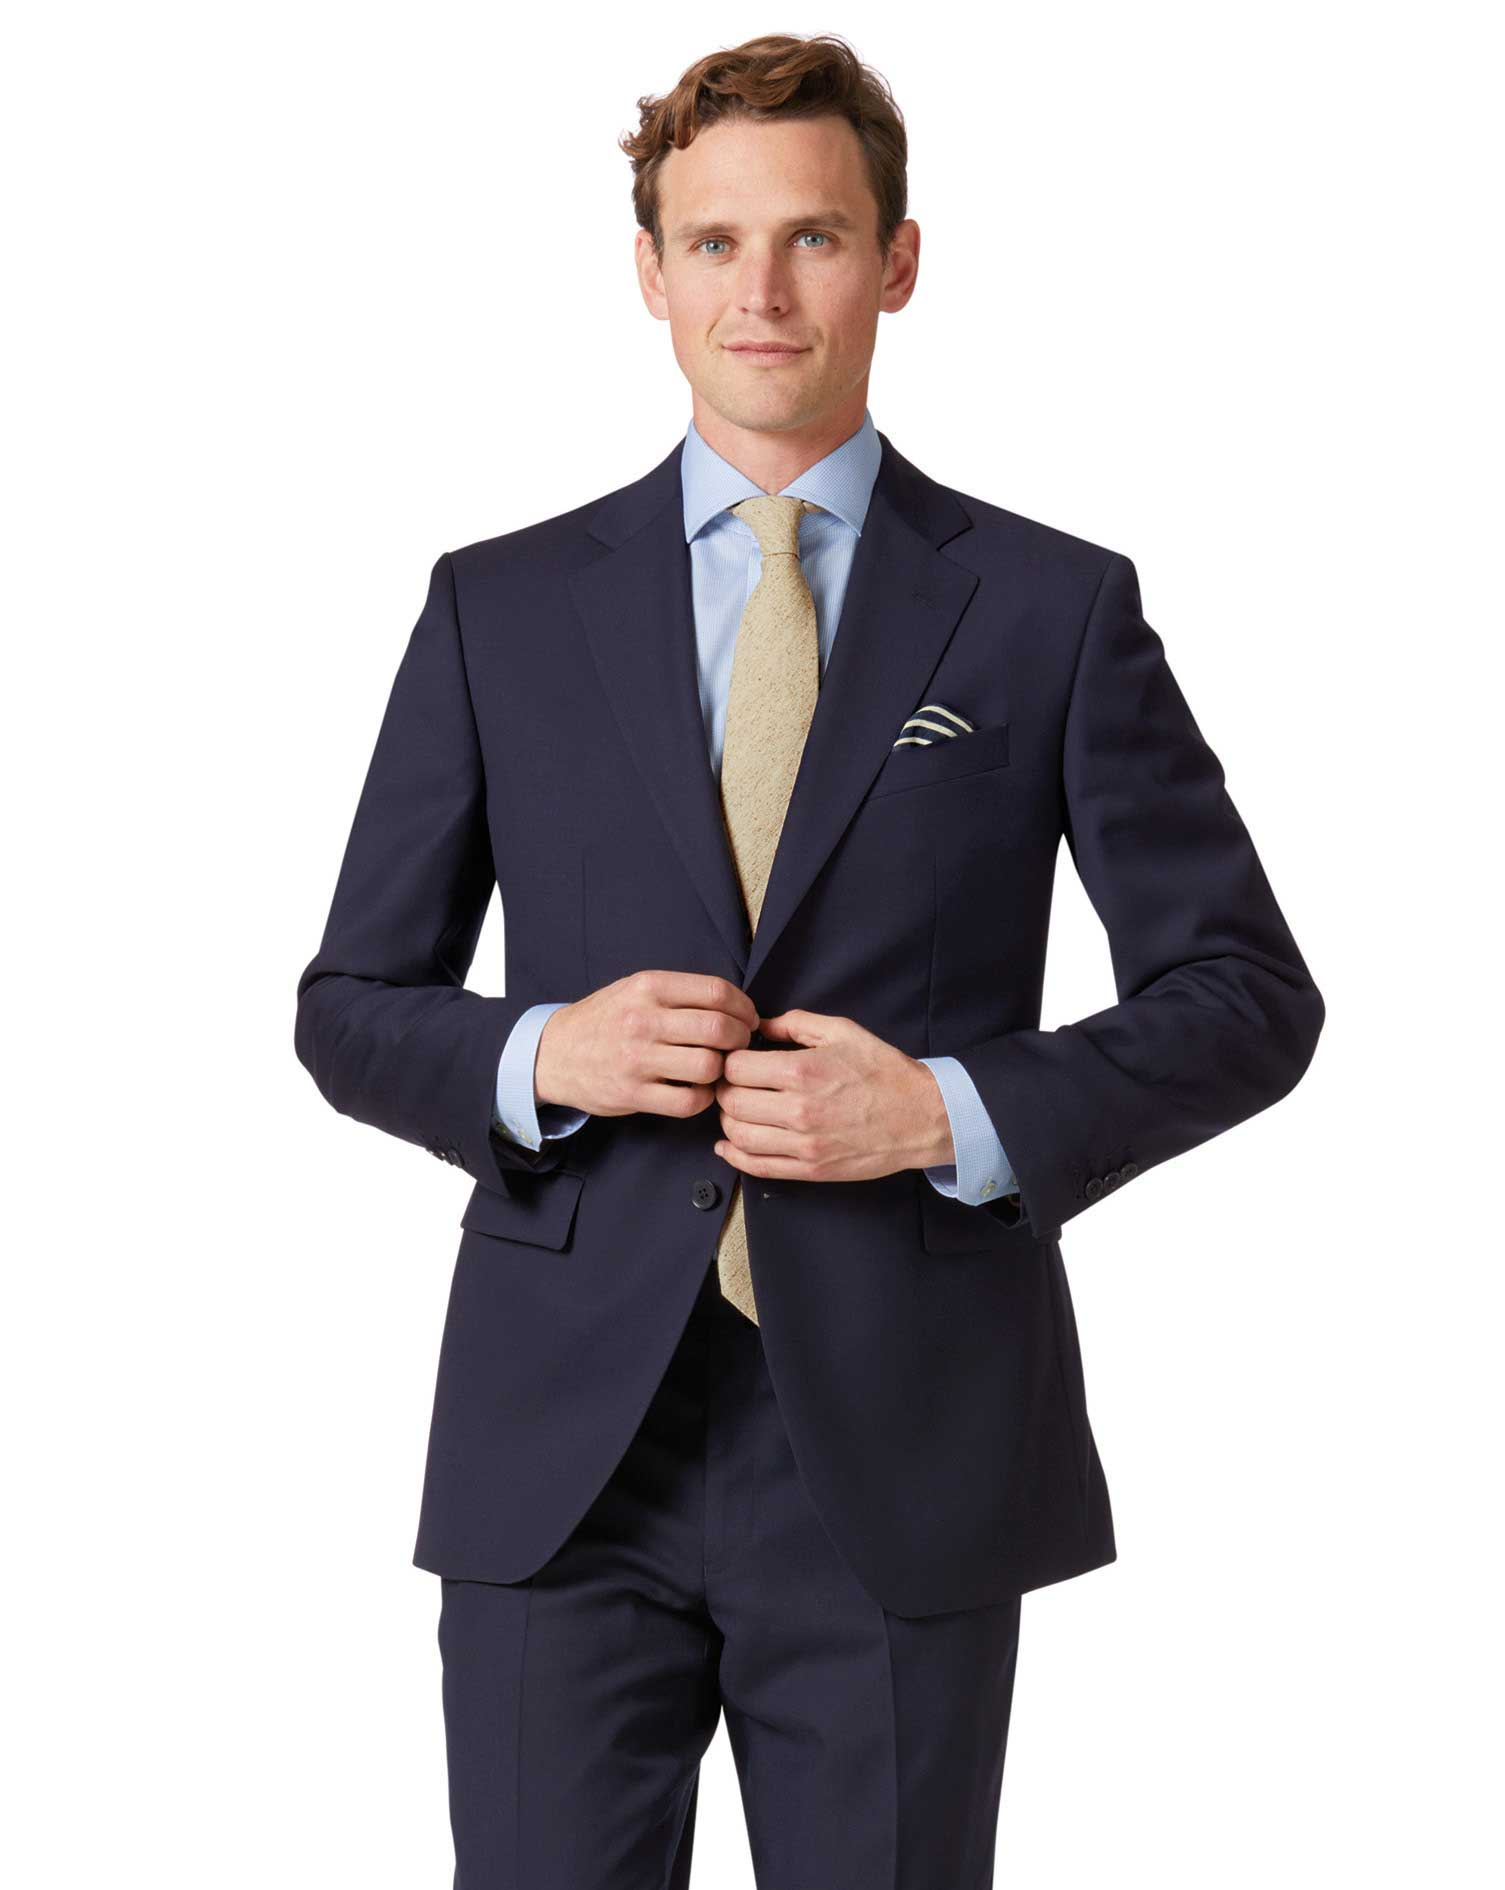 Navy Classic Fit Twill Business Suit Wool Jacket Size 48 Regular by Charles Tyrwhitt from Charles Tyrwhitt